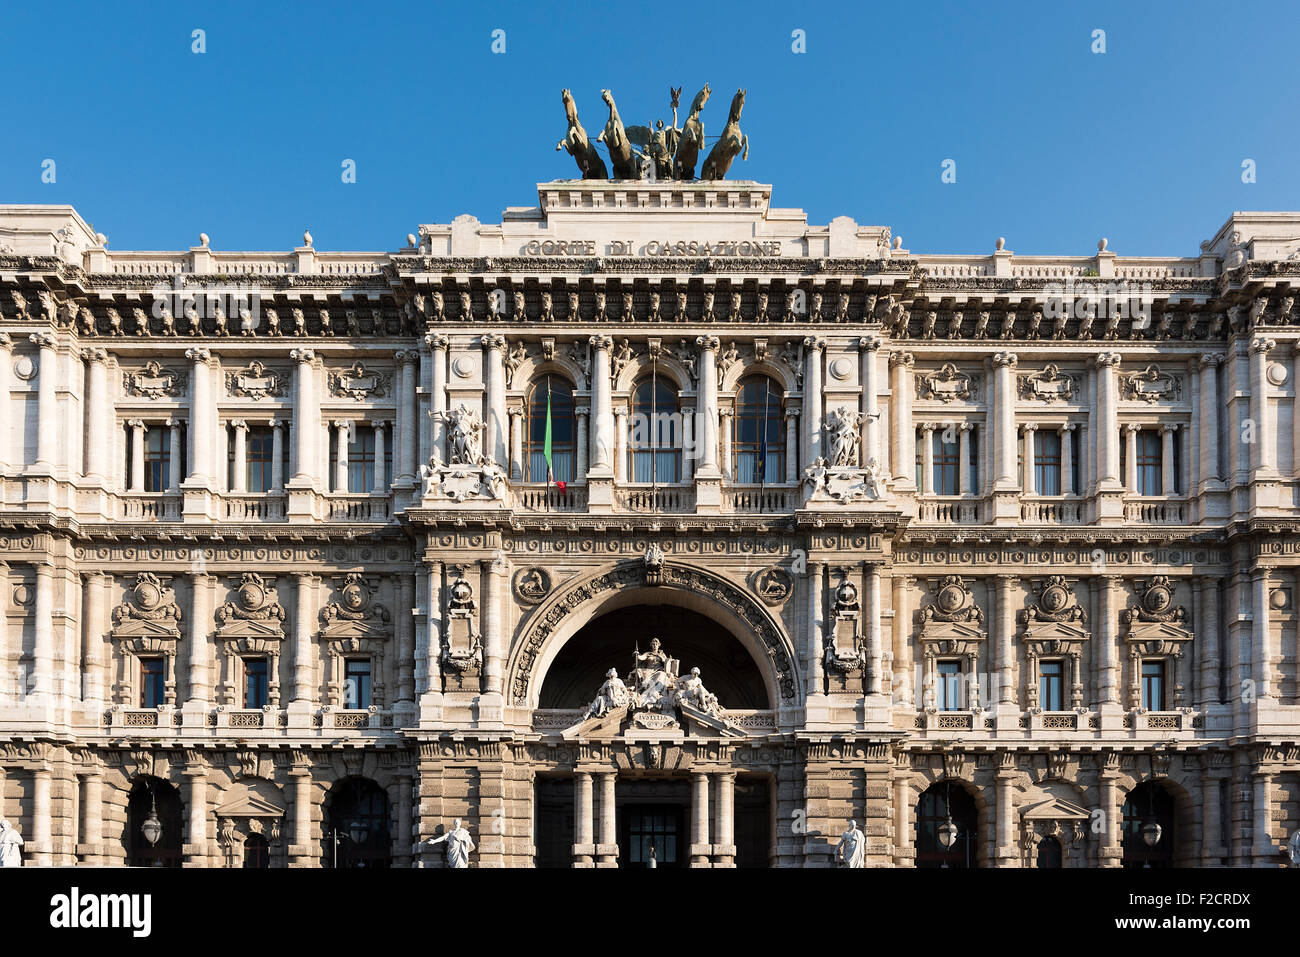 Palace of Justice, Piazza dei Tribunali, Rome, Italy - Stock Image